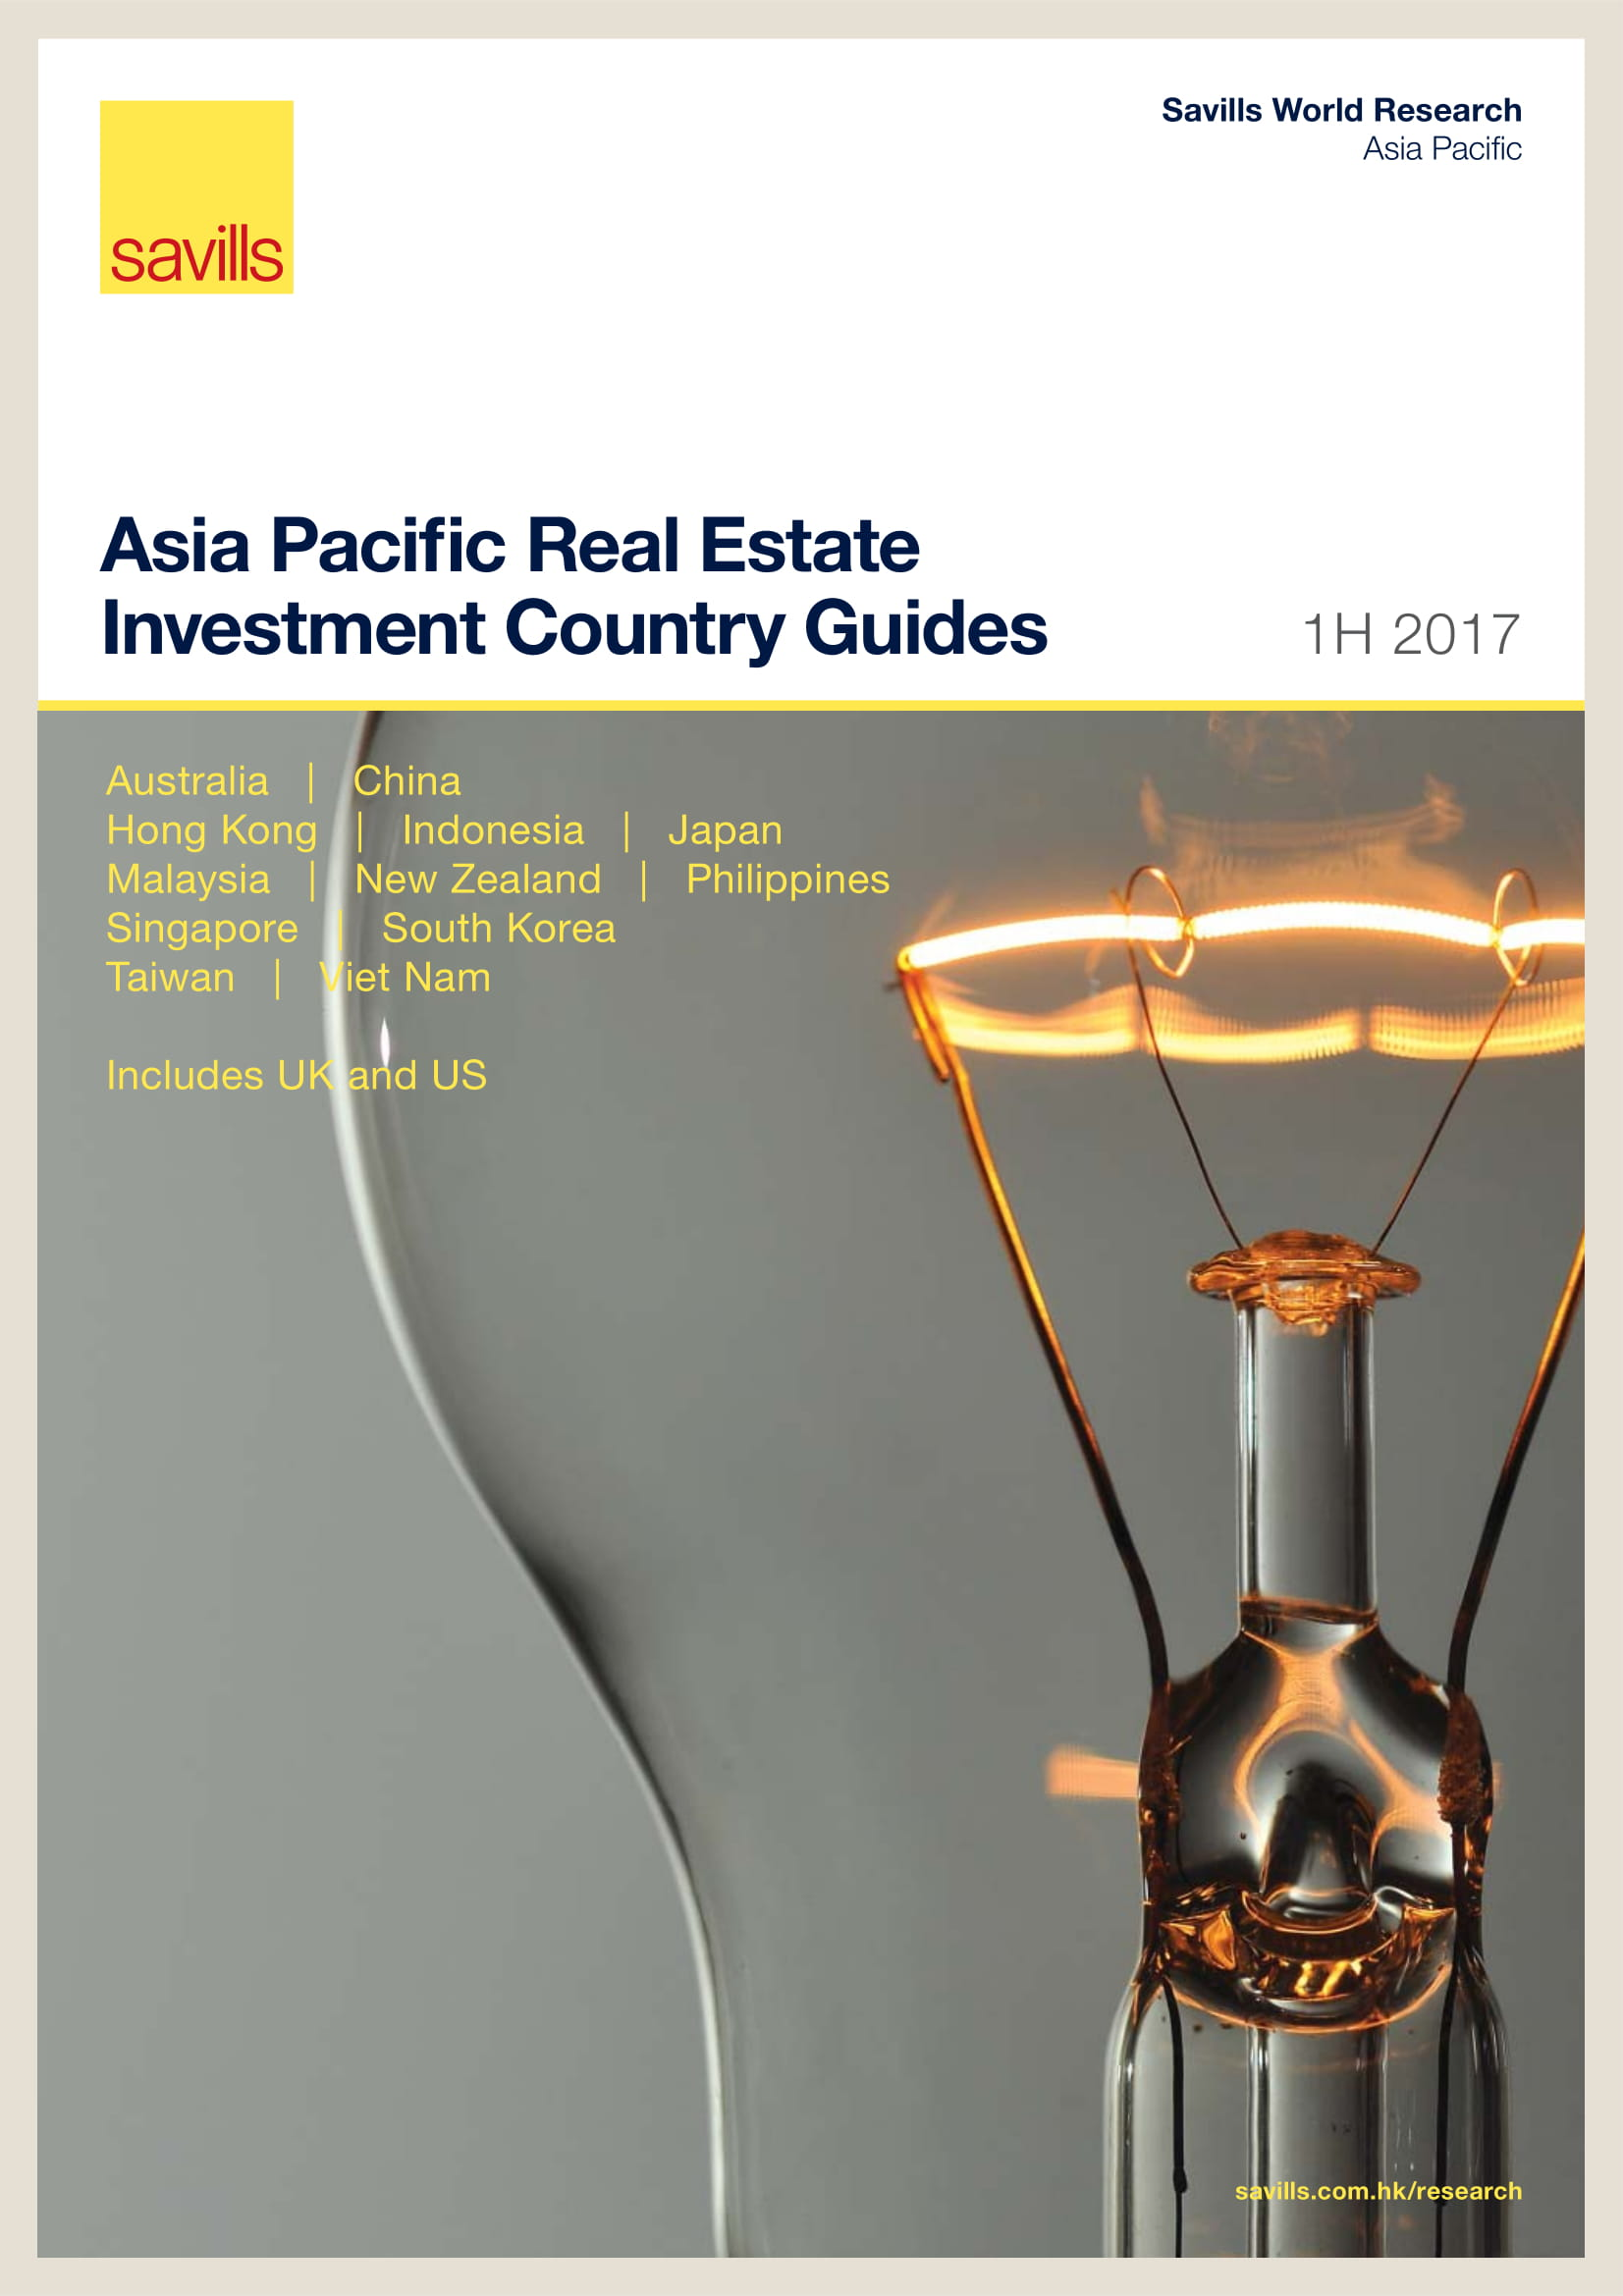 Asia Pacific Real Estate Investment Country Guides 1H 2017